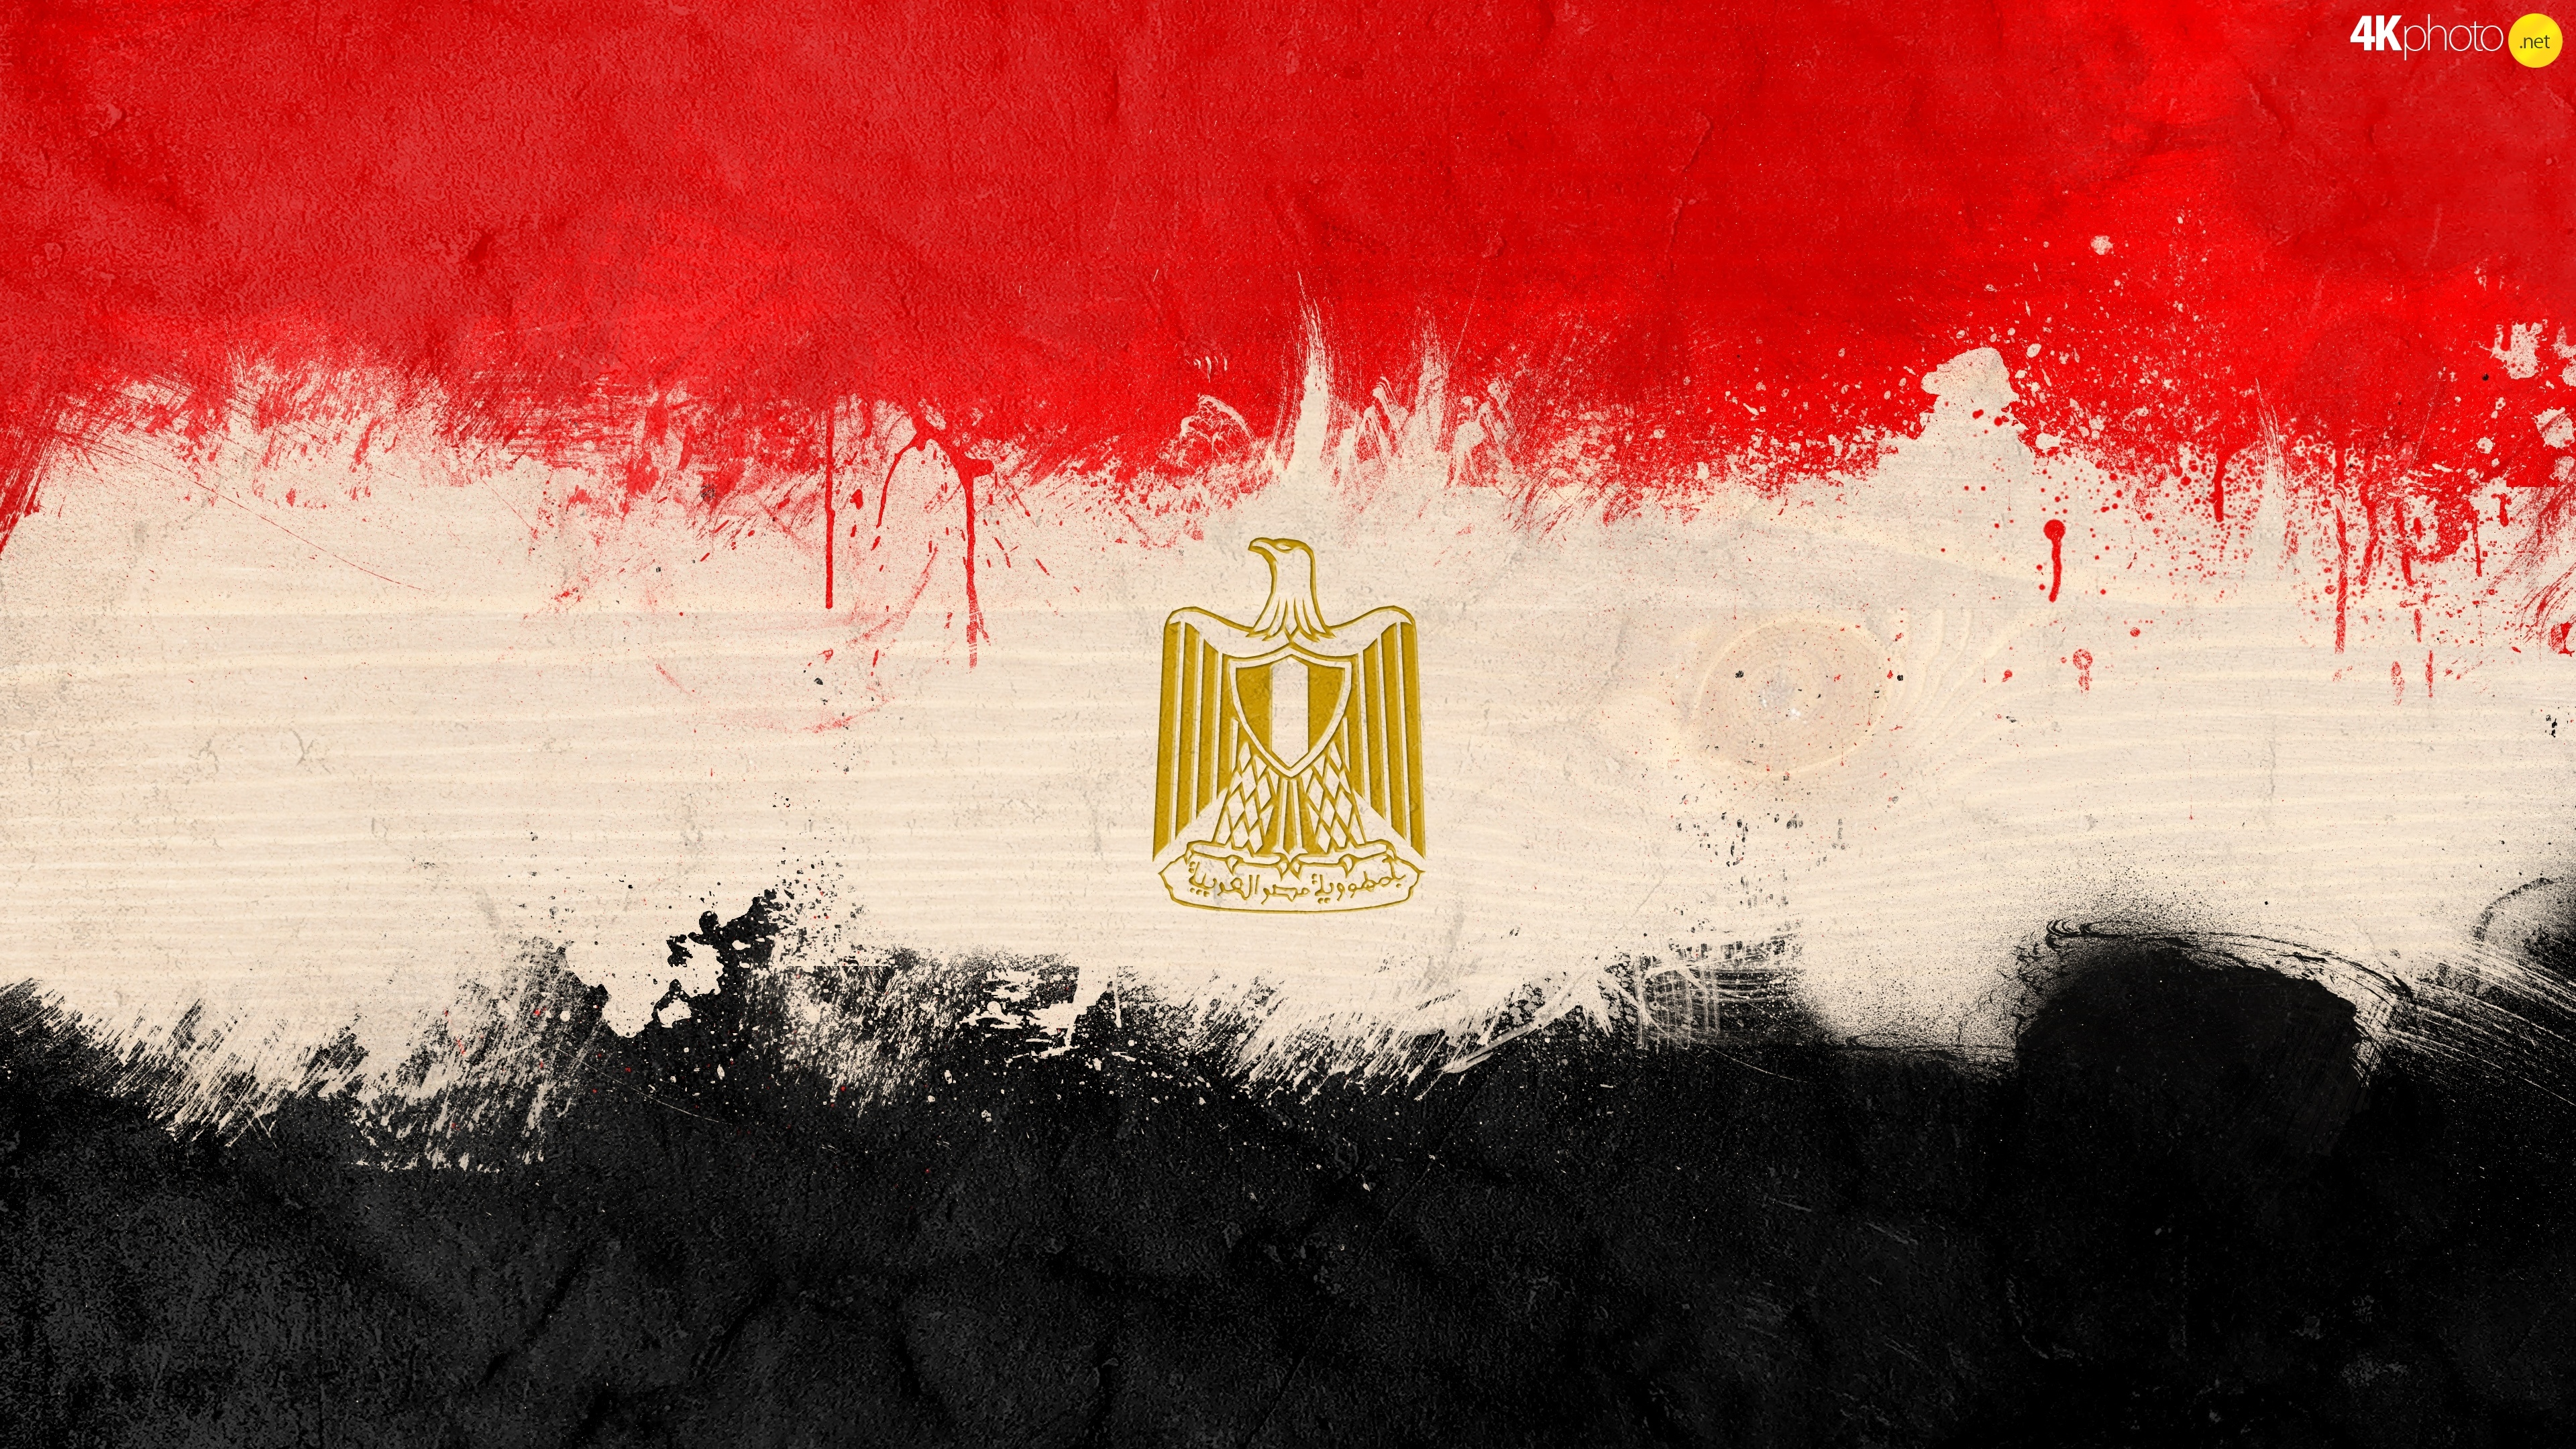 Egypt Flag colors Egypt Flag meaning history